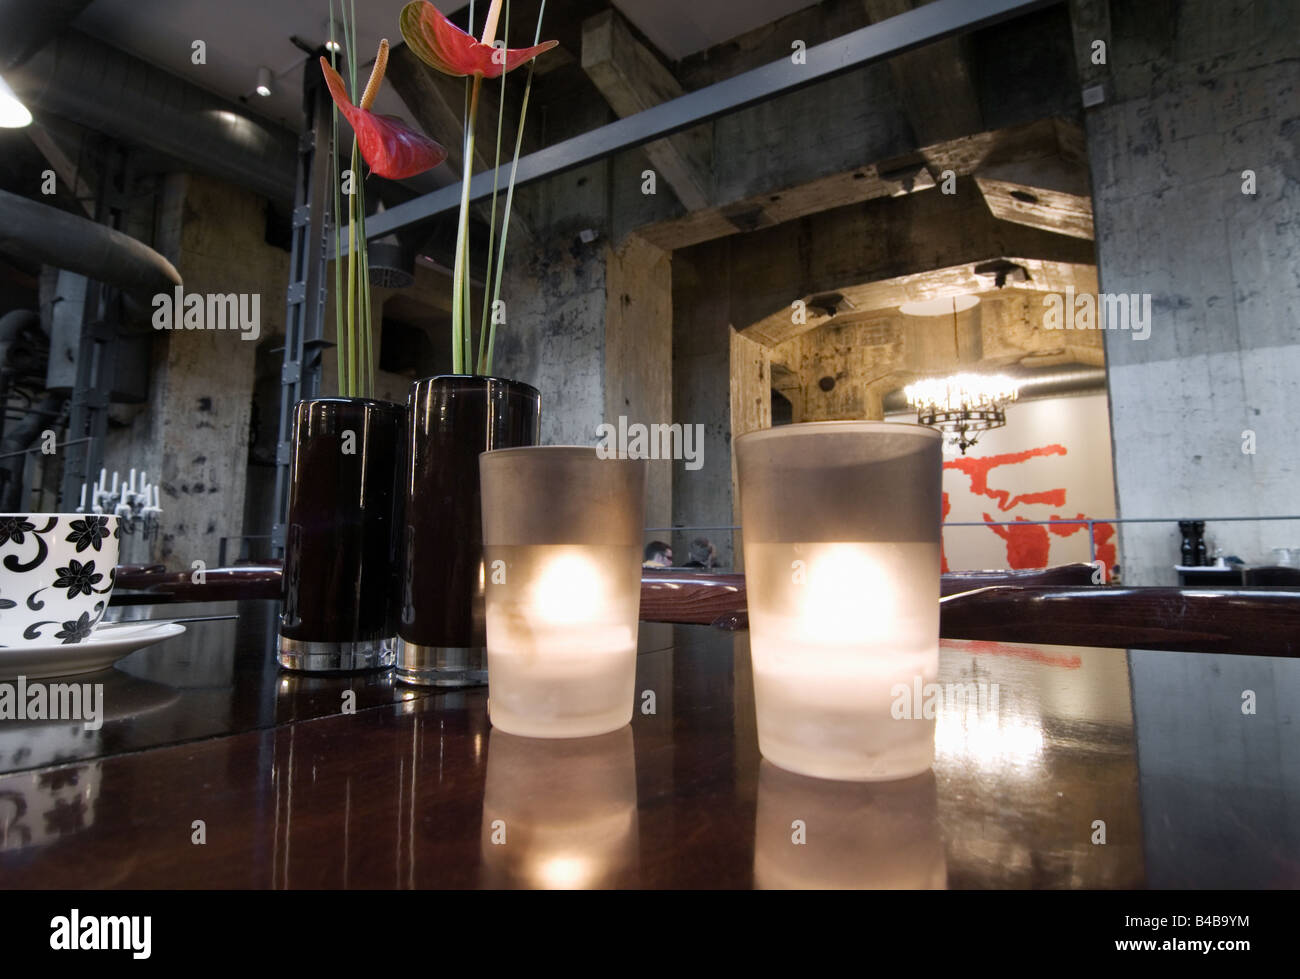 Restaurant Casino at Zeche Zollverein in Essen Germany - Stock Image